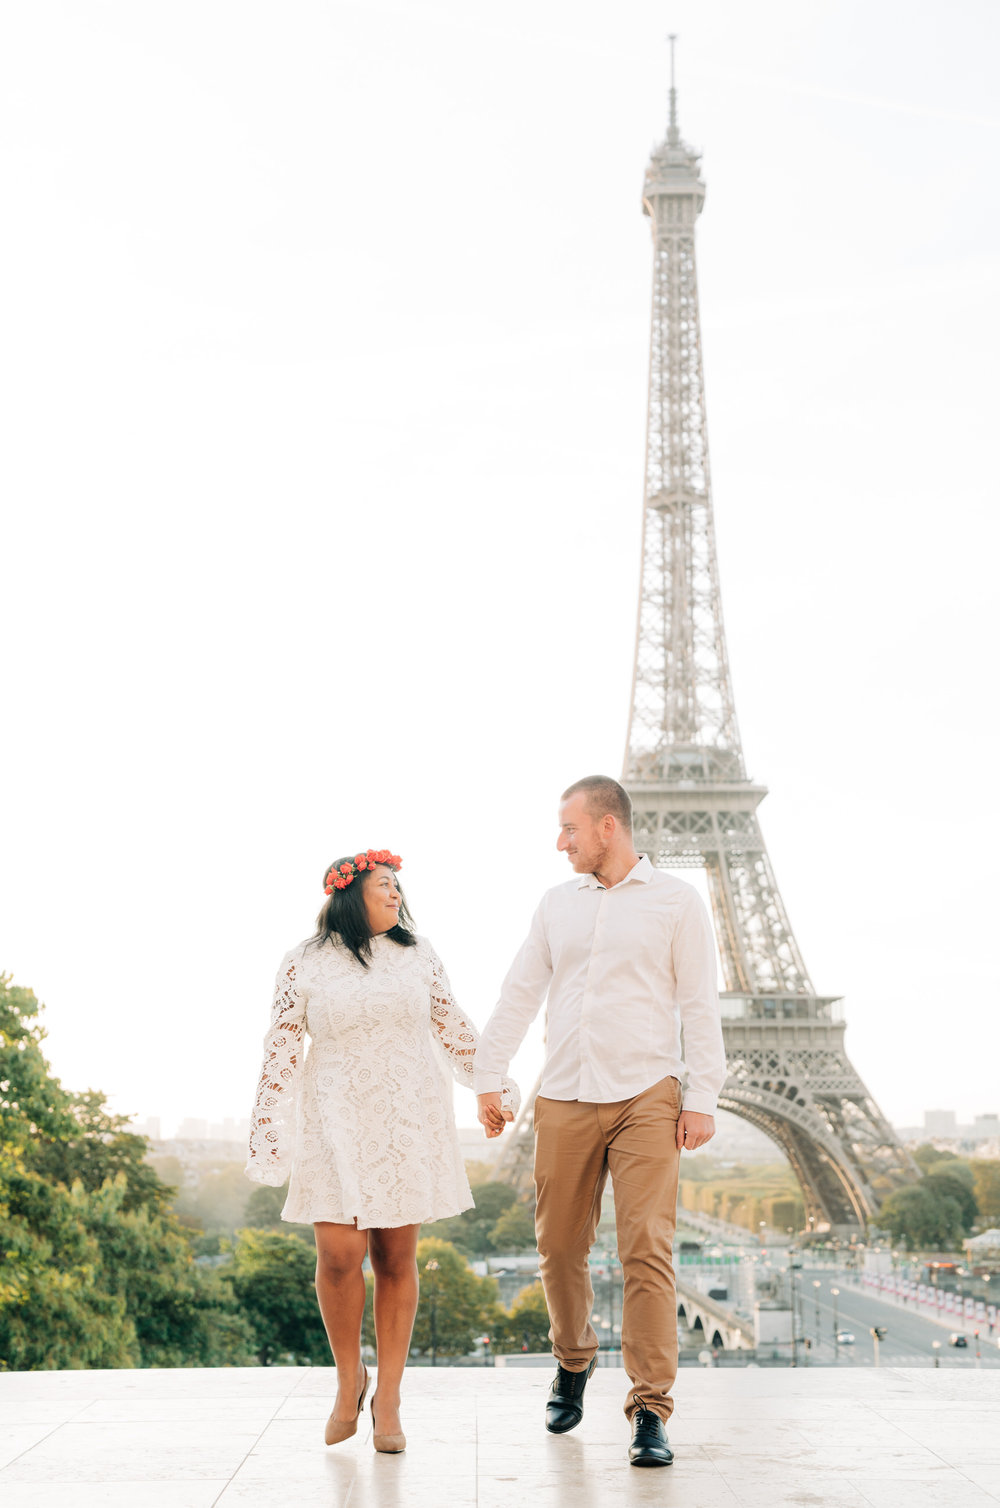 engagement photo shoot in paris france at the eiffel tower